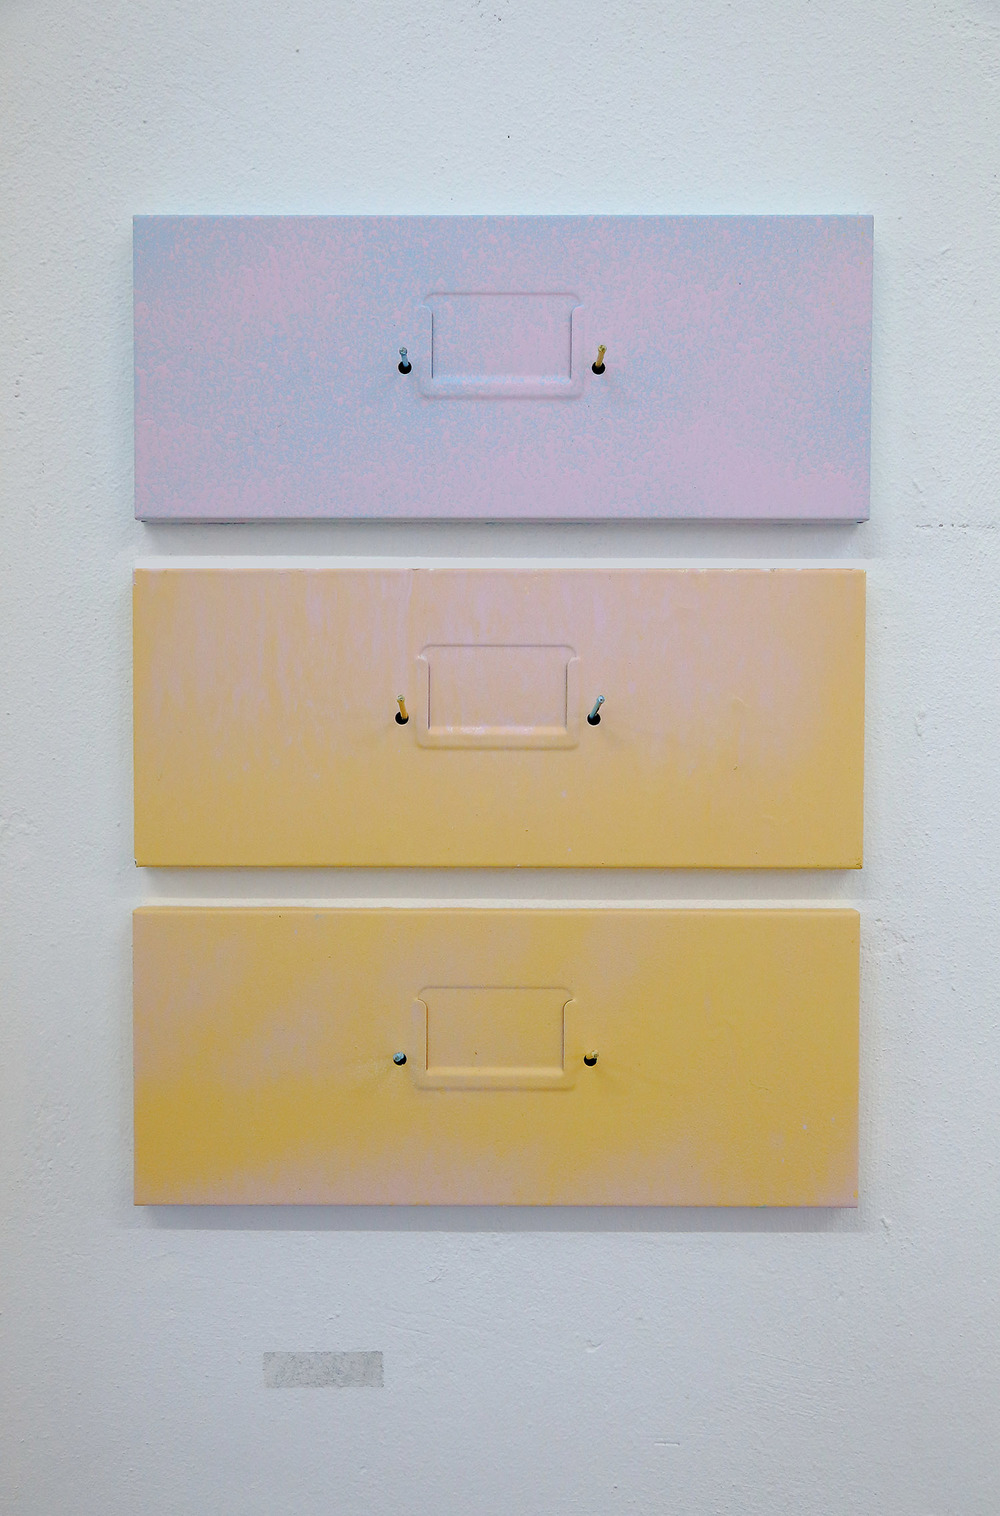 Compartmentalising the S(h)elf Part 1(b): 3 Way Split / Sunset Strip     3 x acrylic painted panels, nails, sticky tape imprint     Installation view